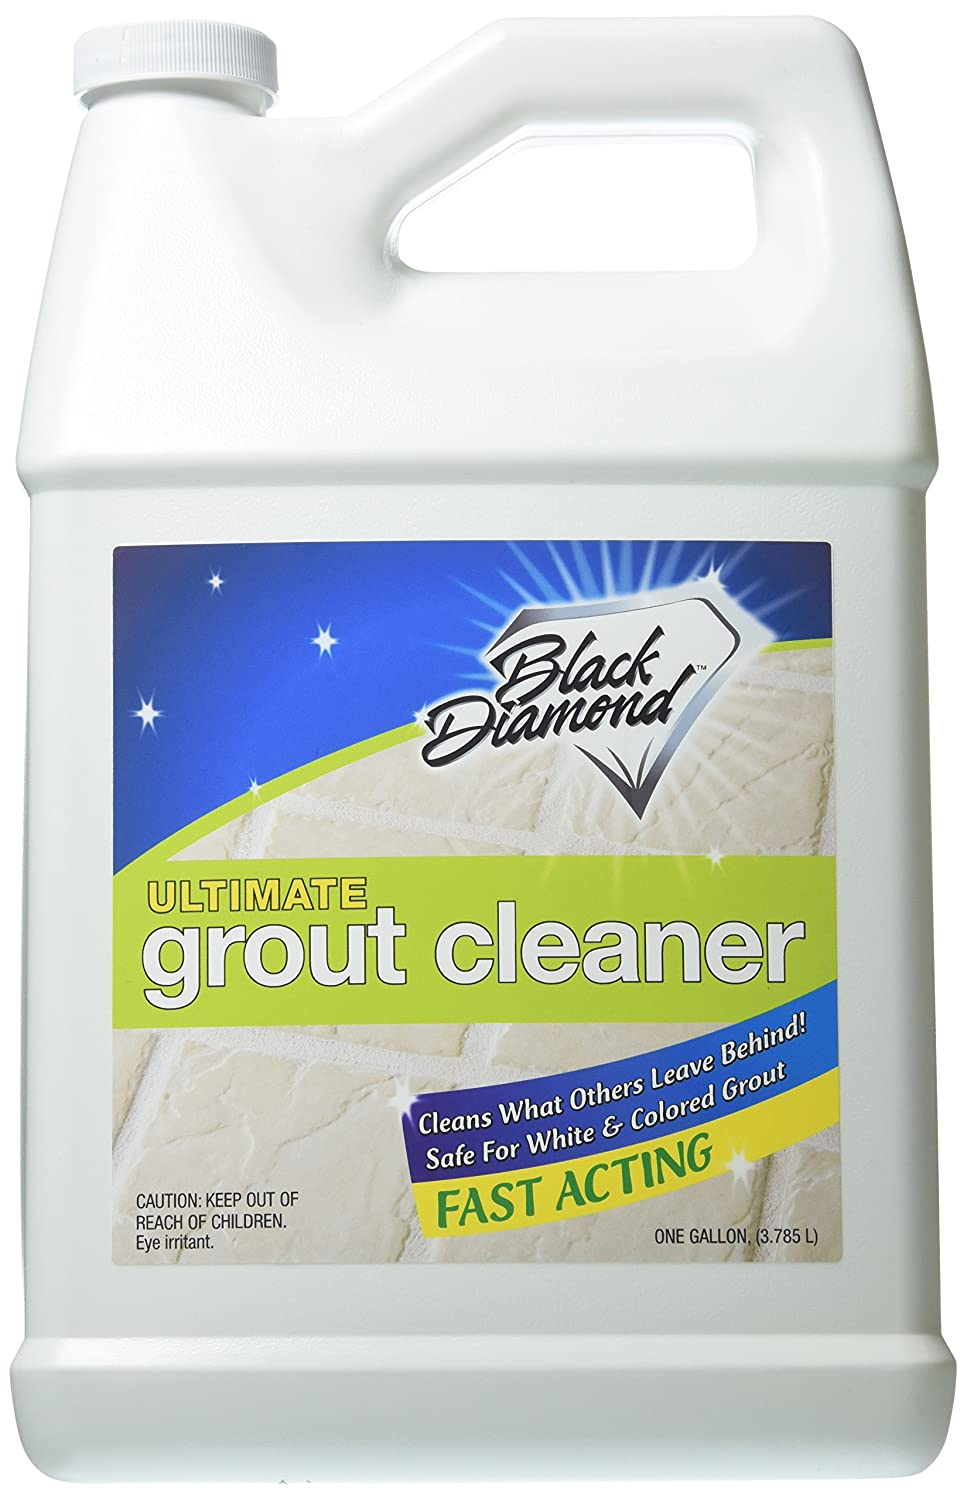 Ultimate grout cleaner best grout cleaner for tile and grout ultimate grout cleaner best grout cleaner for tile and grout cleaning acid free safe deep cleaner stain remover for even the dirtiest grout dailygadgetfo Choice Image